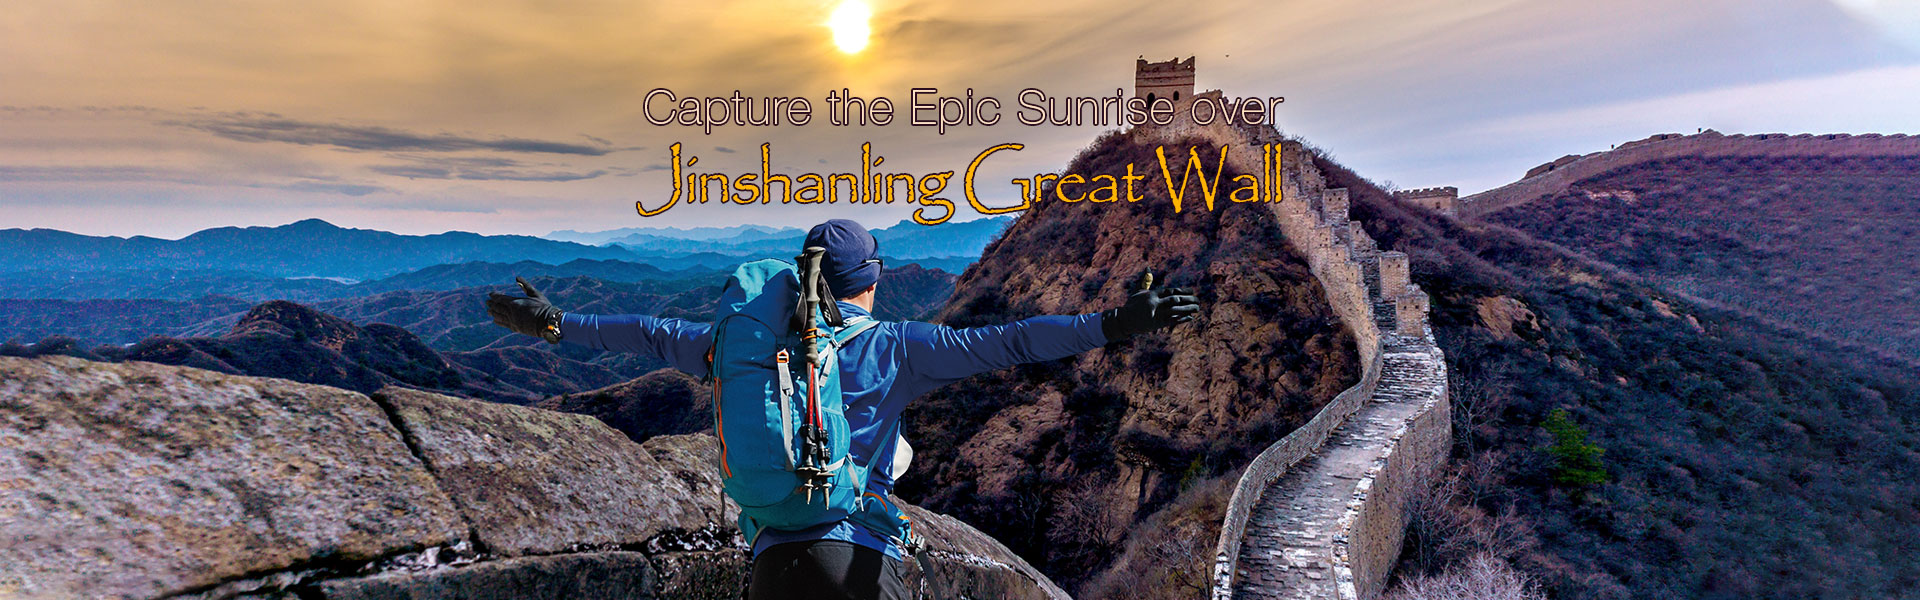 Capture the Epic Sunrise over Jinshanling Great Wall